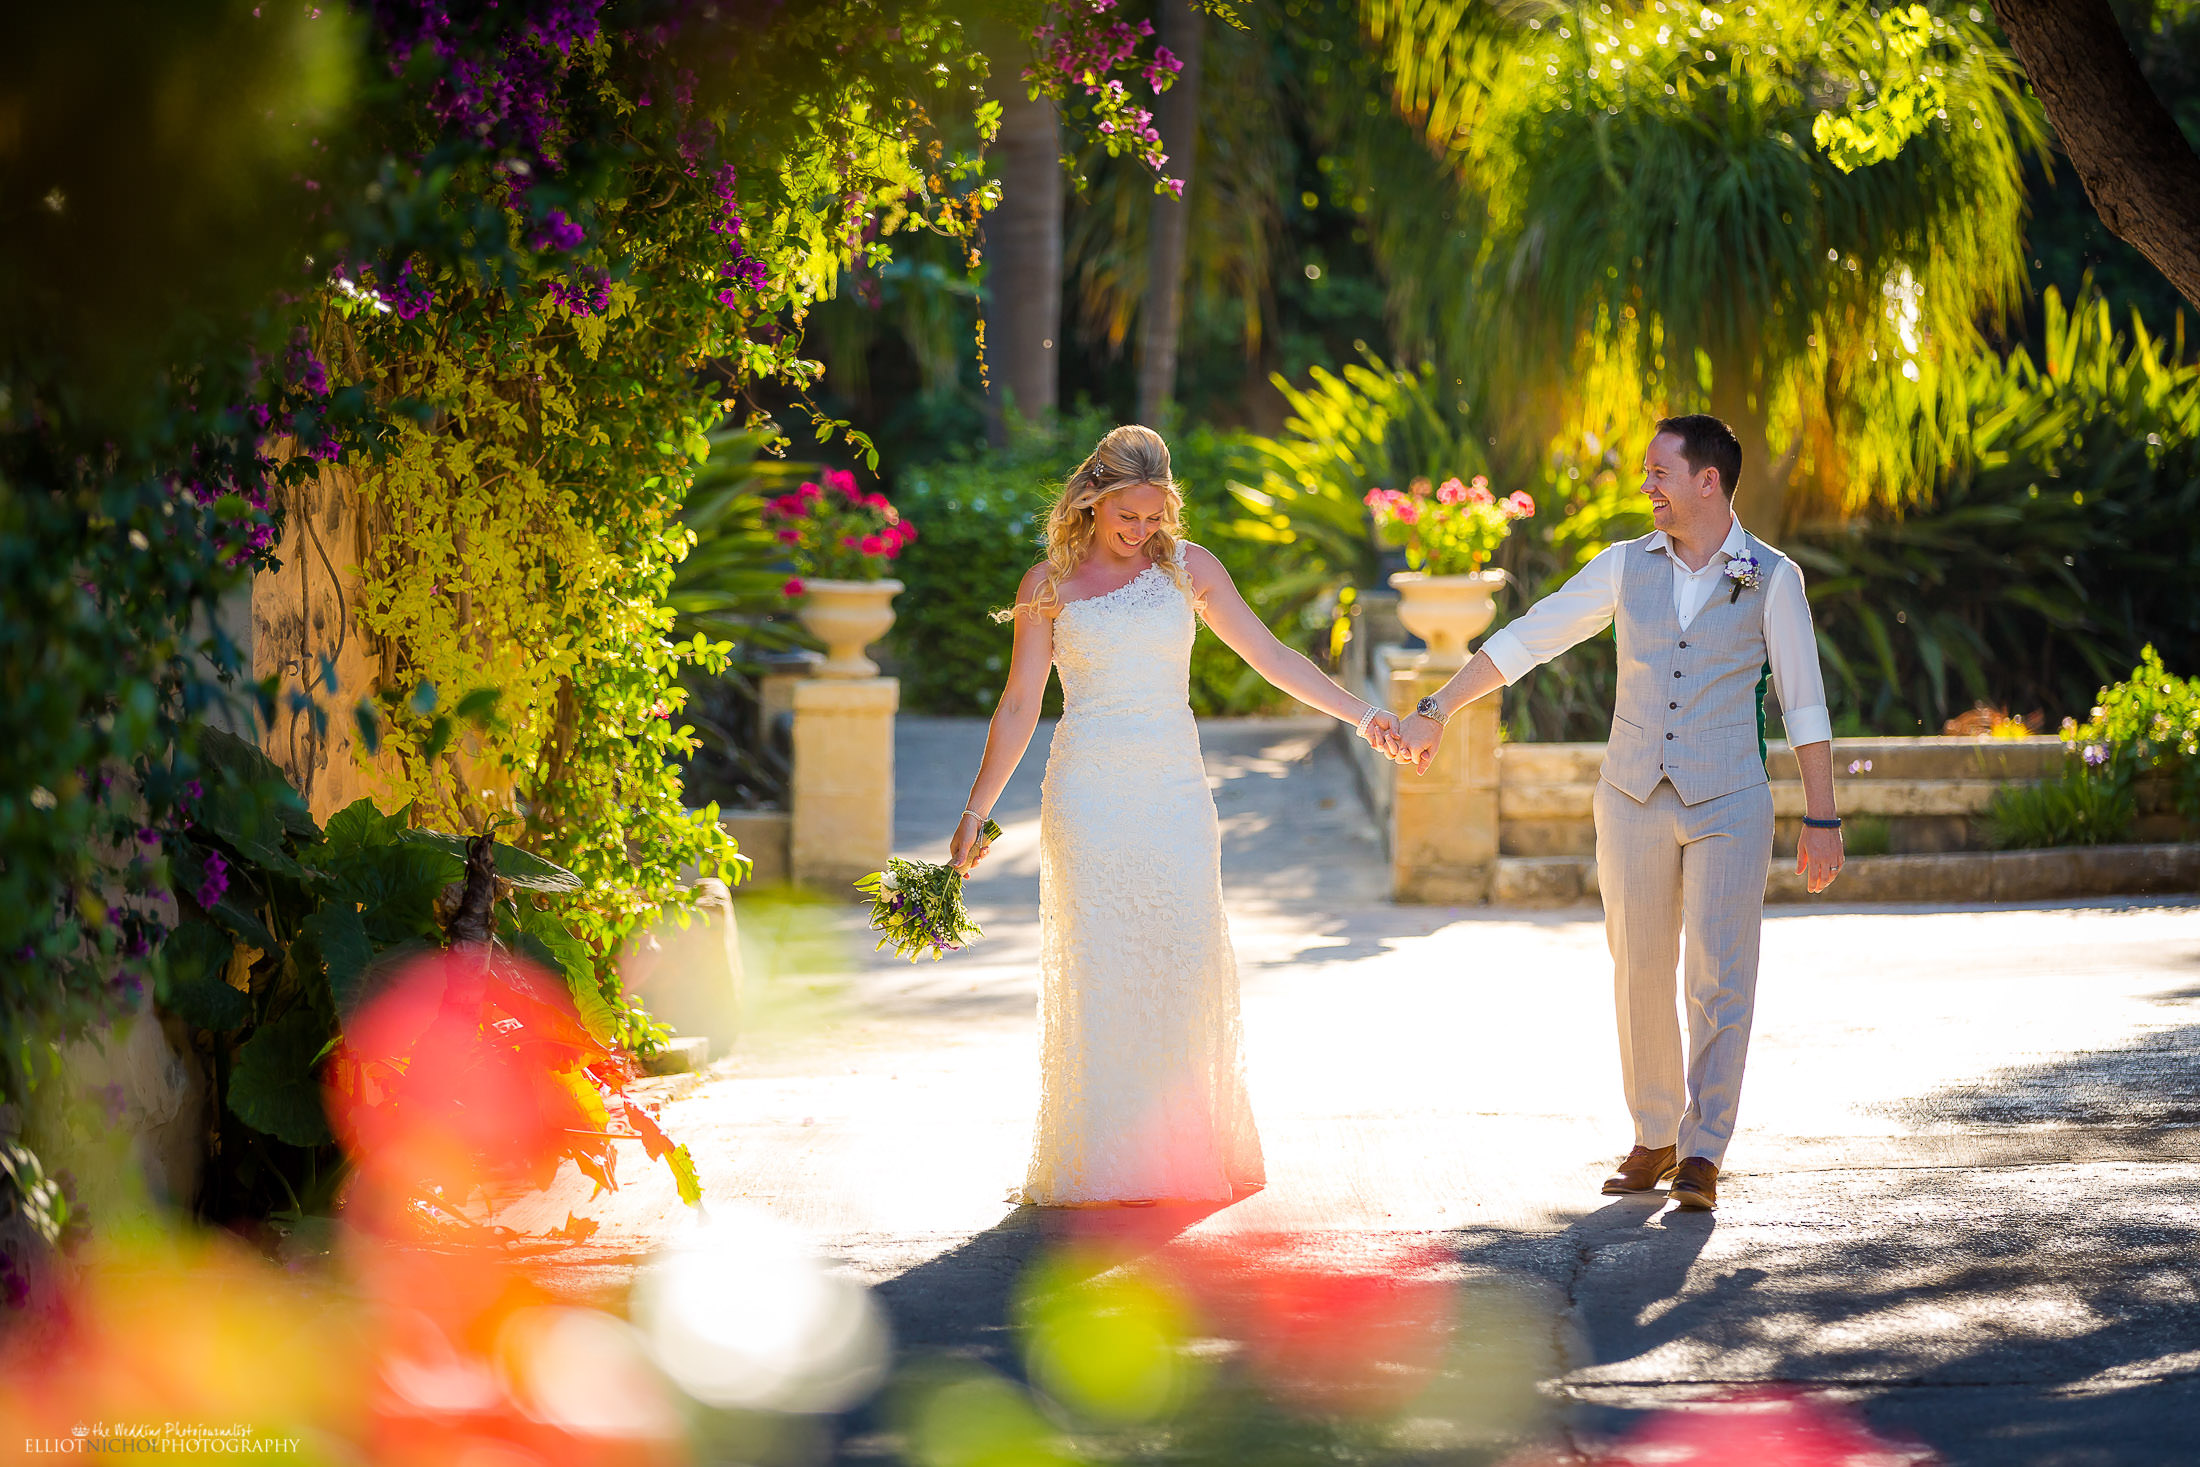 Bride and groom walk through their wedding venue gardens. Photo by Elliot Nichol Photography.